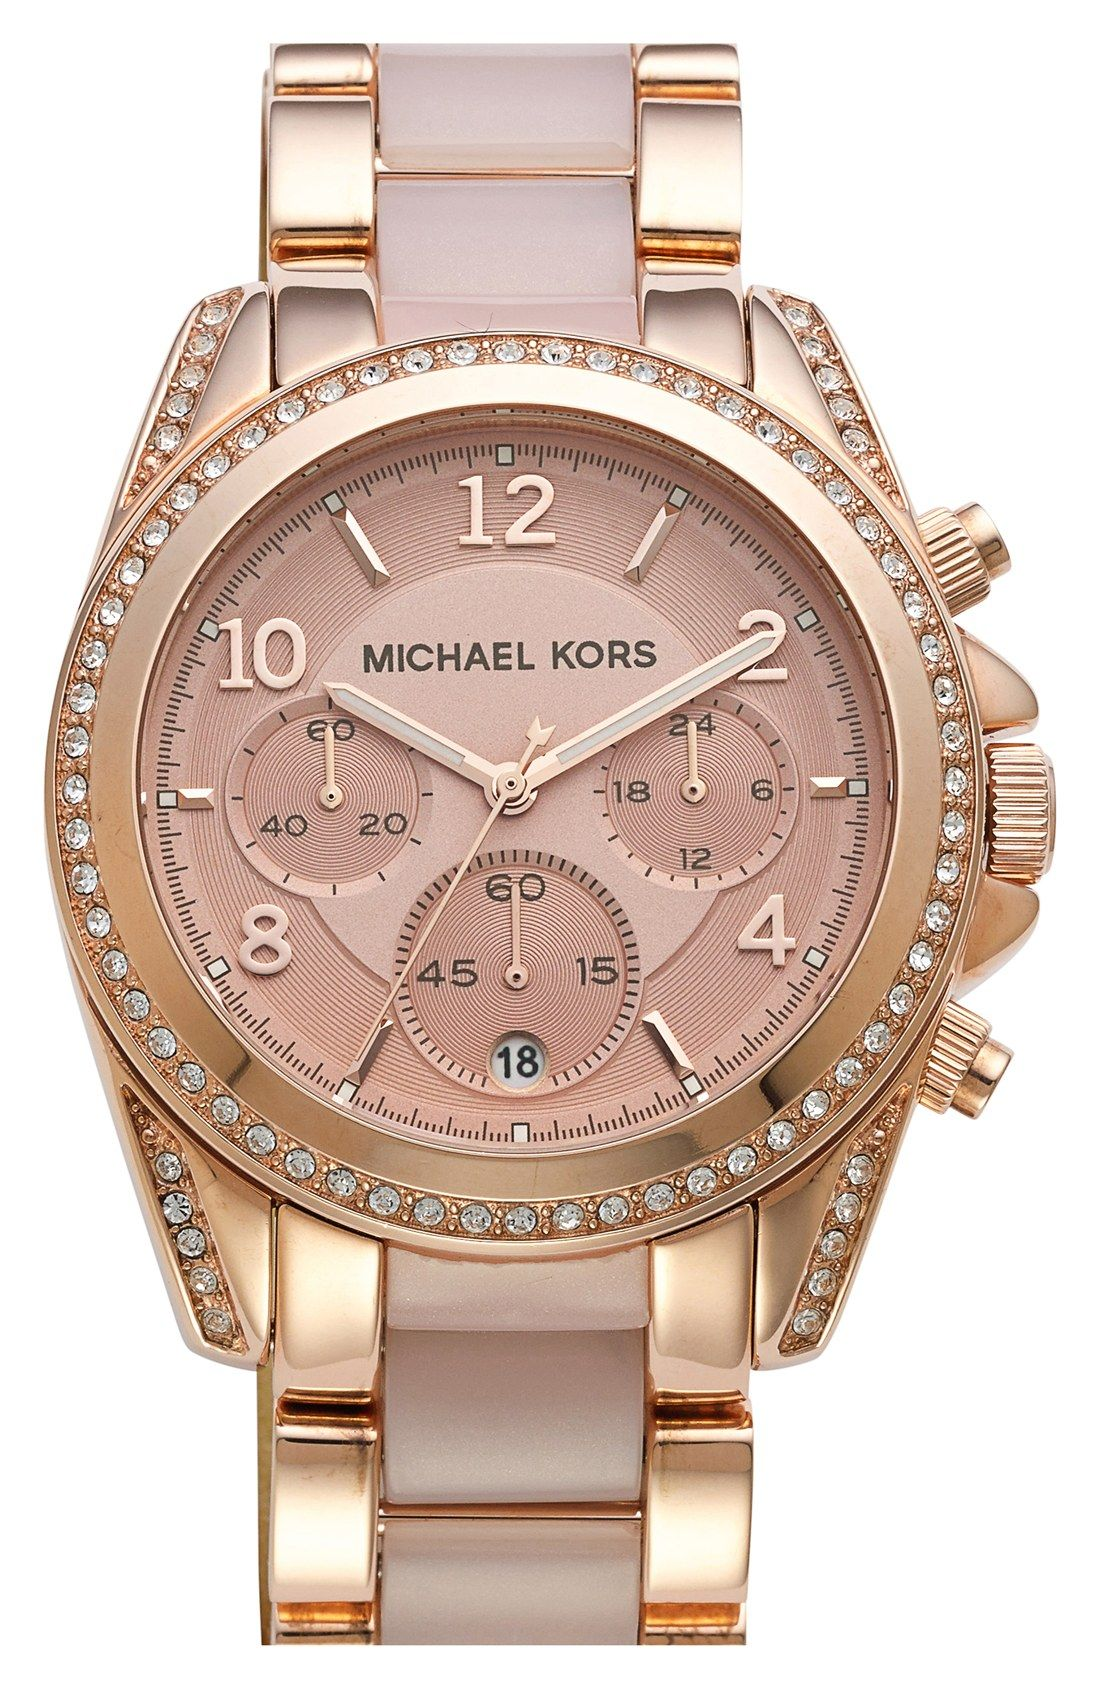 This lovely rose gold and pink Michael Kors watch belongs on the wish list. 9d80eea12f930